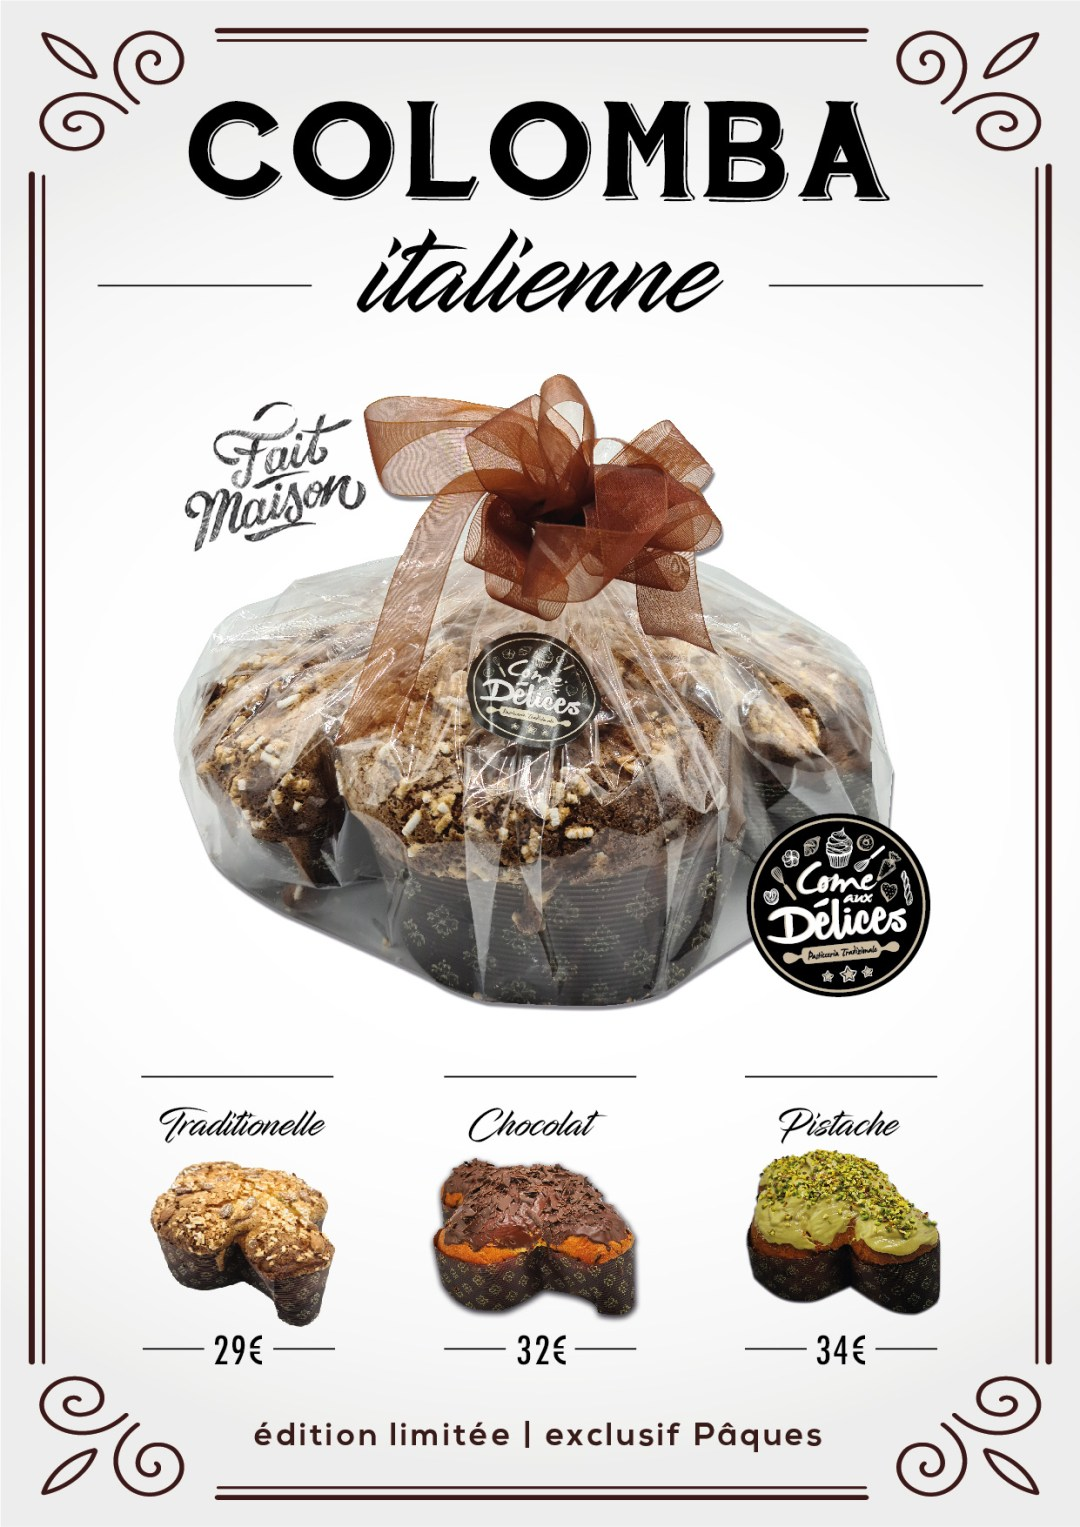 POSTER COLOMBA 01